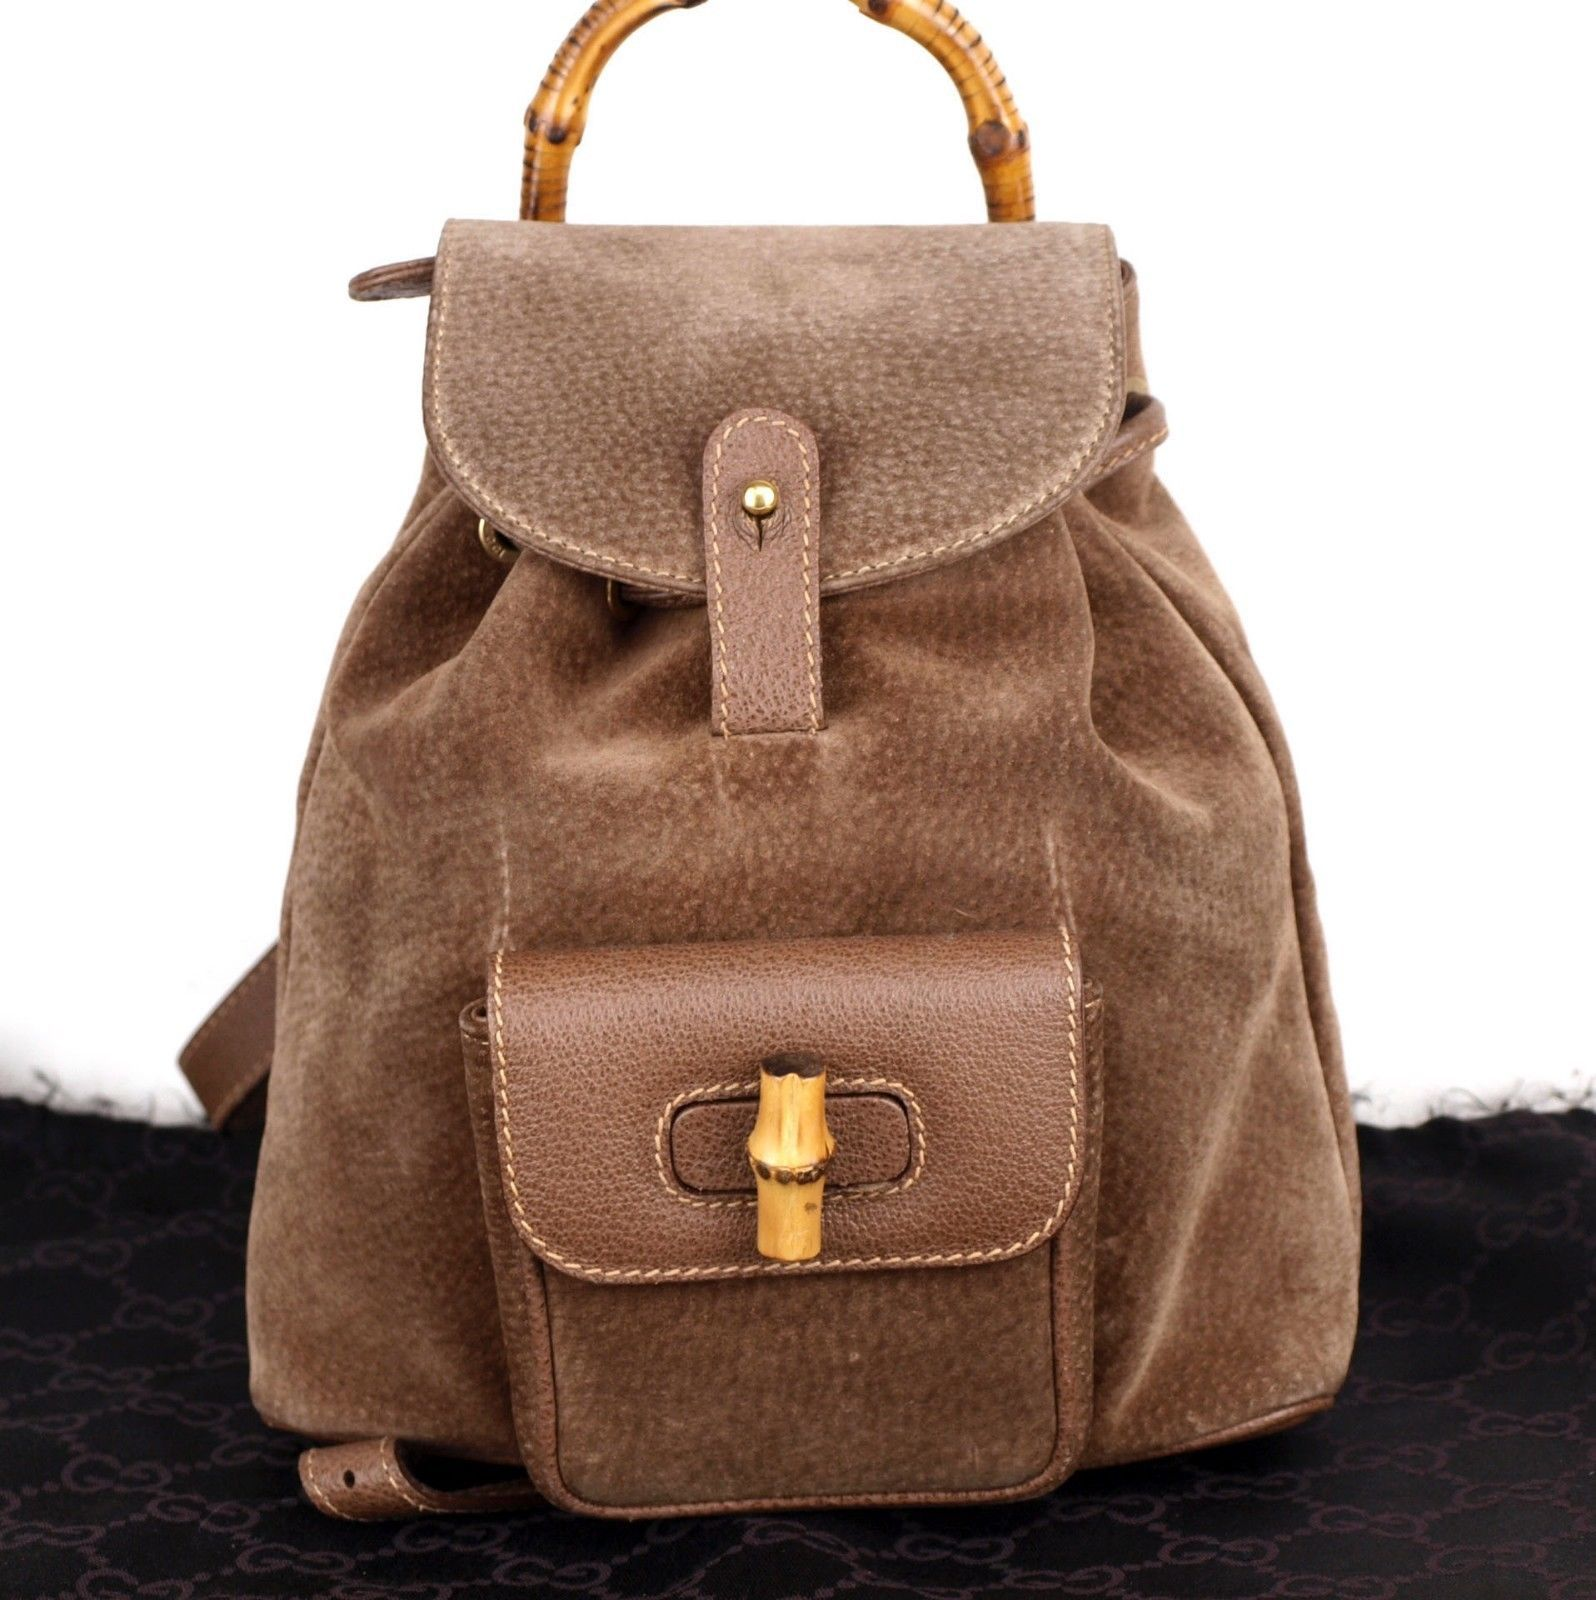 d805aa60426 57. 57. Previous. Authentic GUCCI Bamboo Brown Suede Leather Backpack Bag  Hand Bag Italy Vintage. Authentic ...